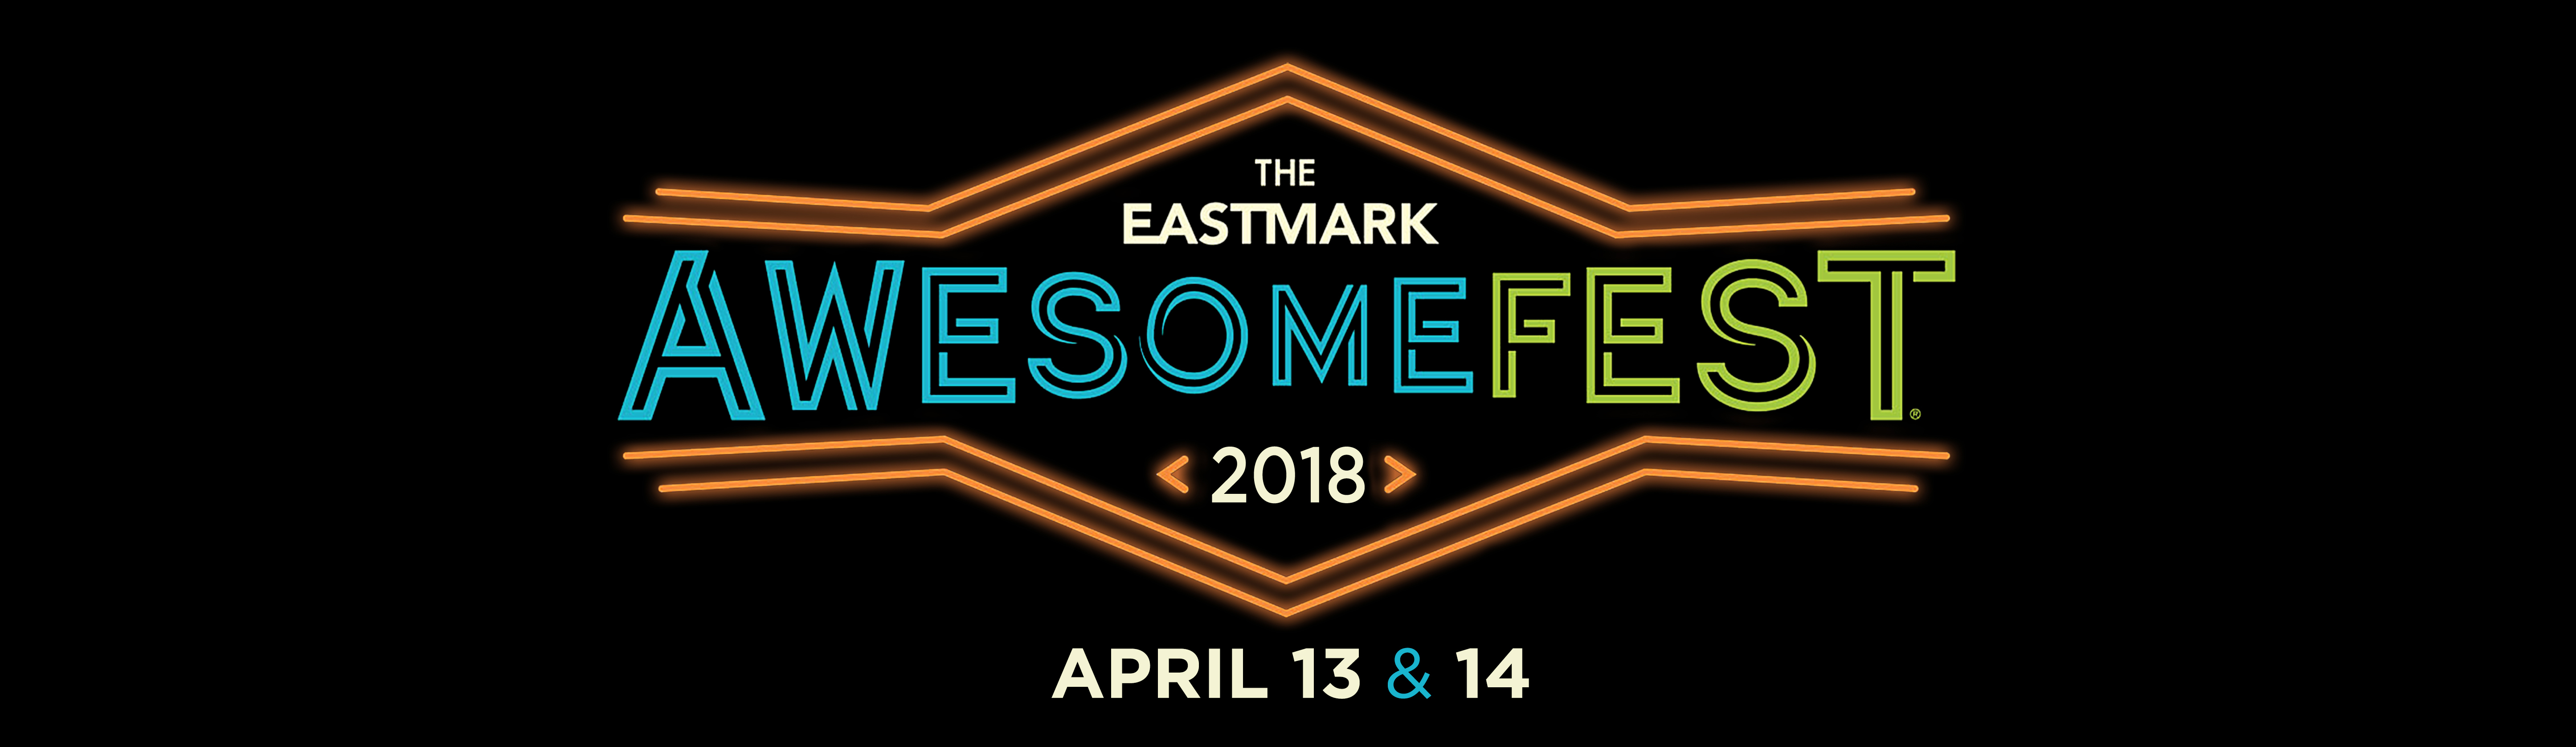 AwesomeFest is bringing the music and the funk